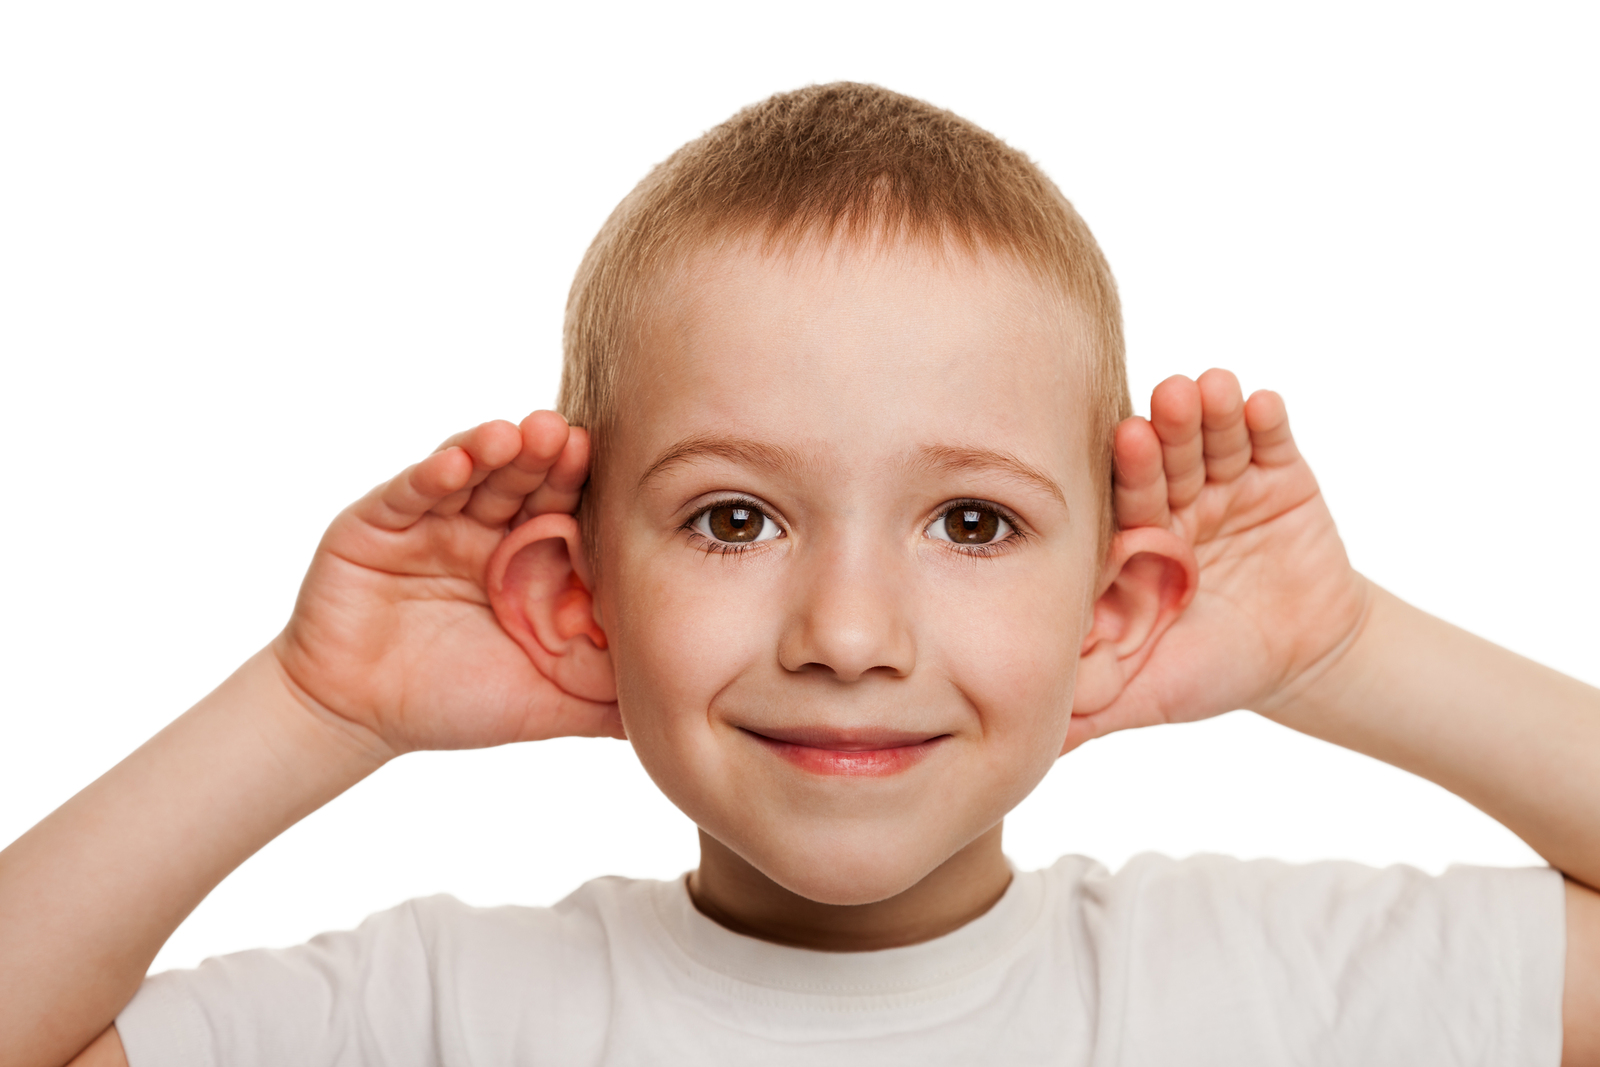 external image bigstock-Child-Listening-19669727.jpg